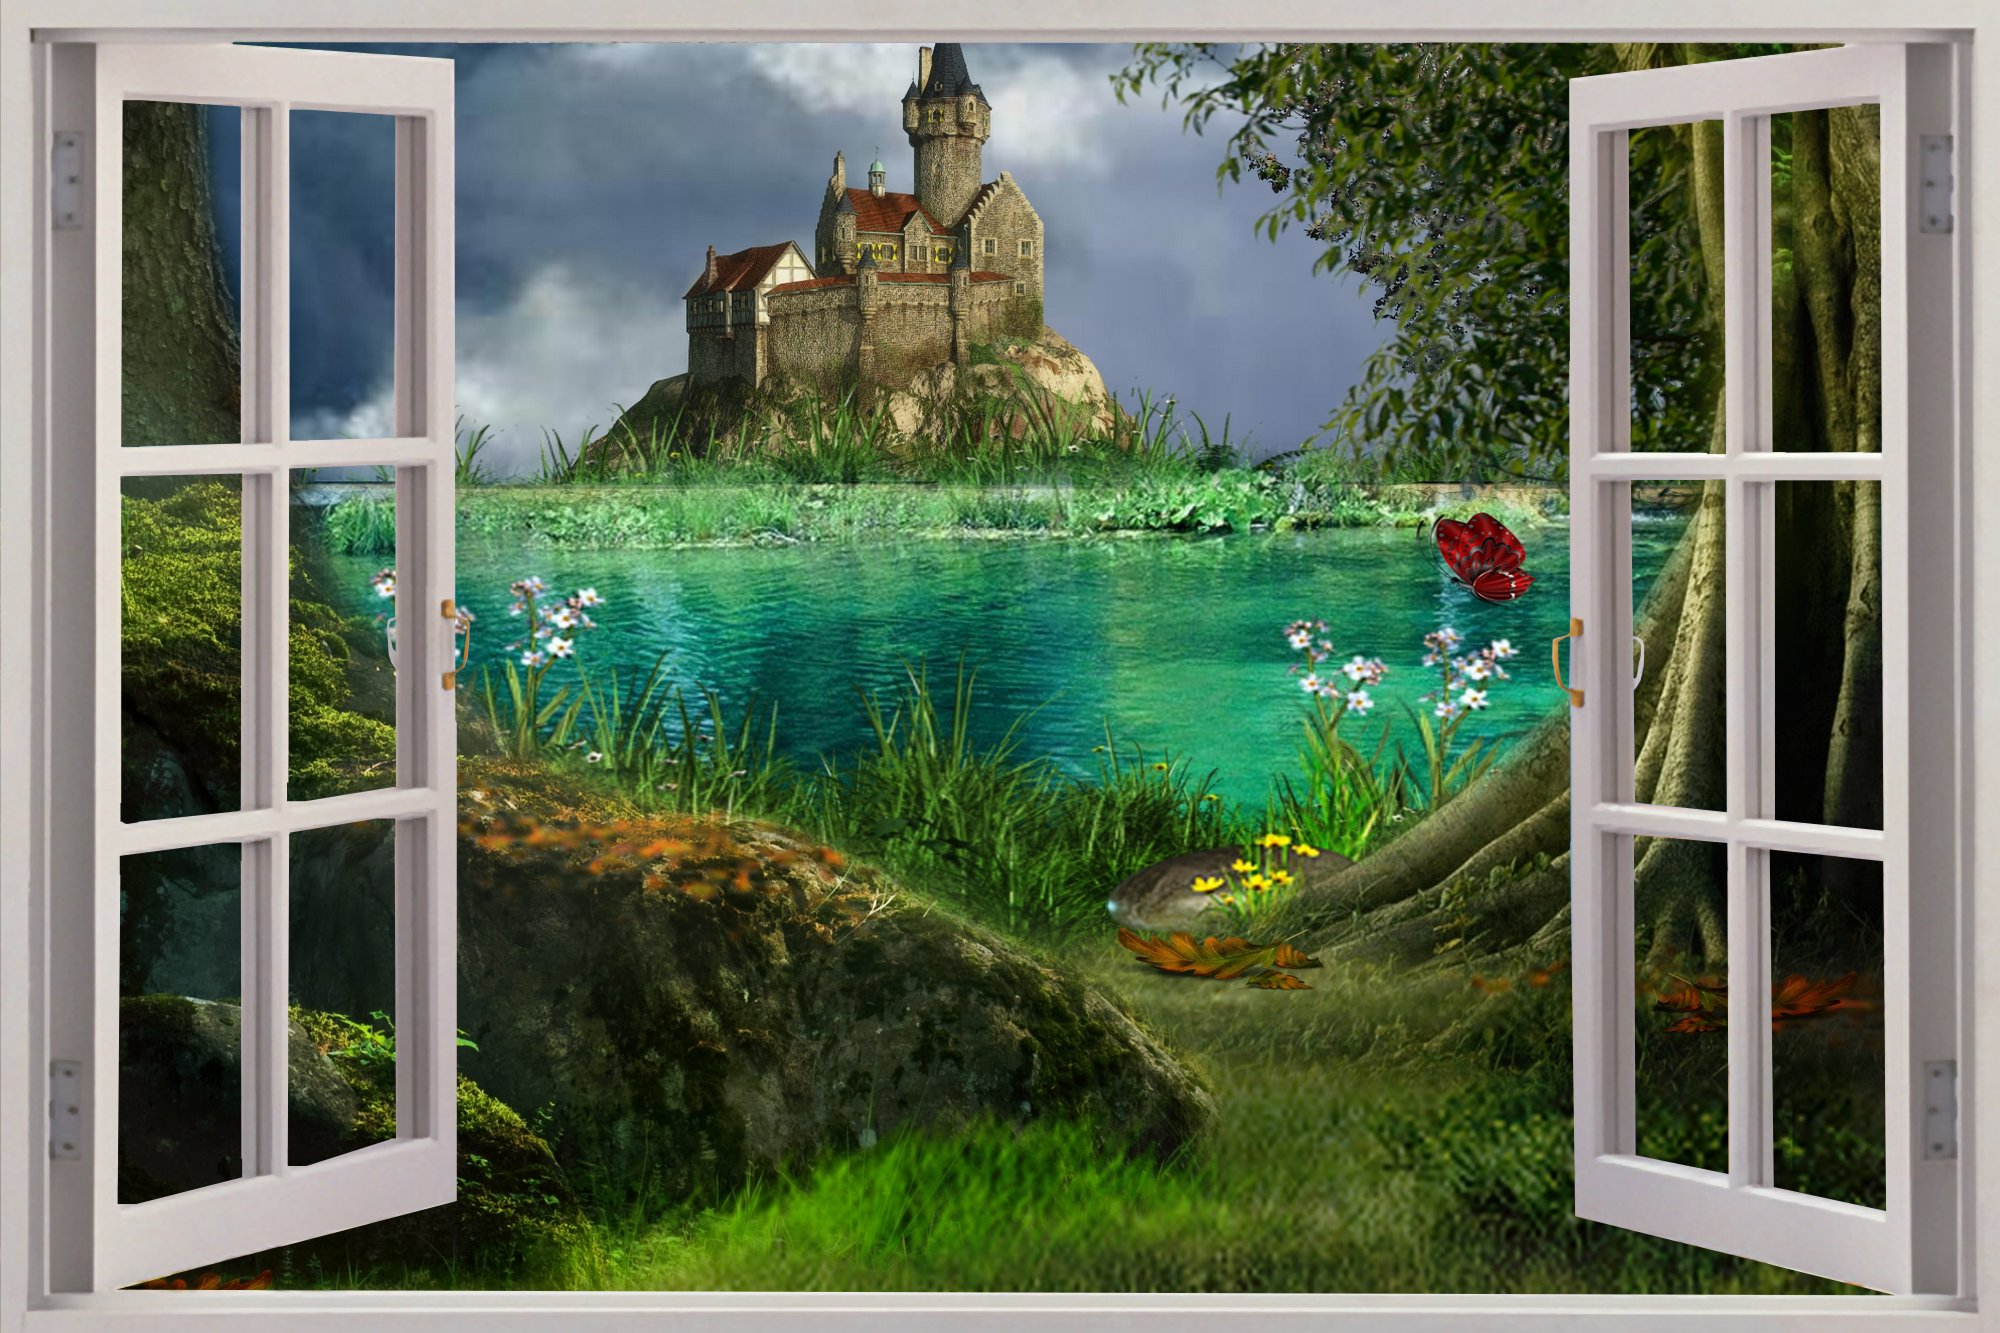 2000x1333 Huge 3d Window View Enchanted Castle Wall Sticker Mural Art Decal - Window View Painting